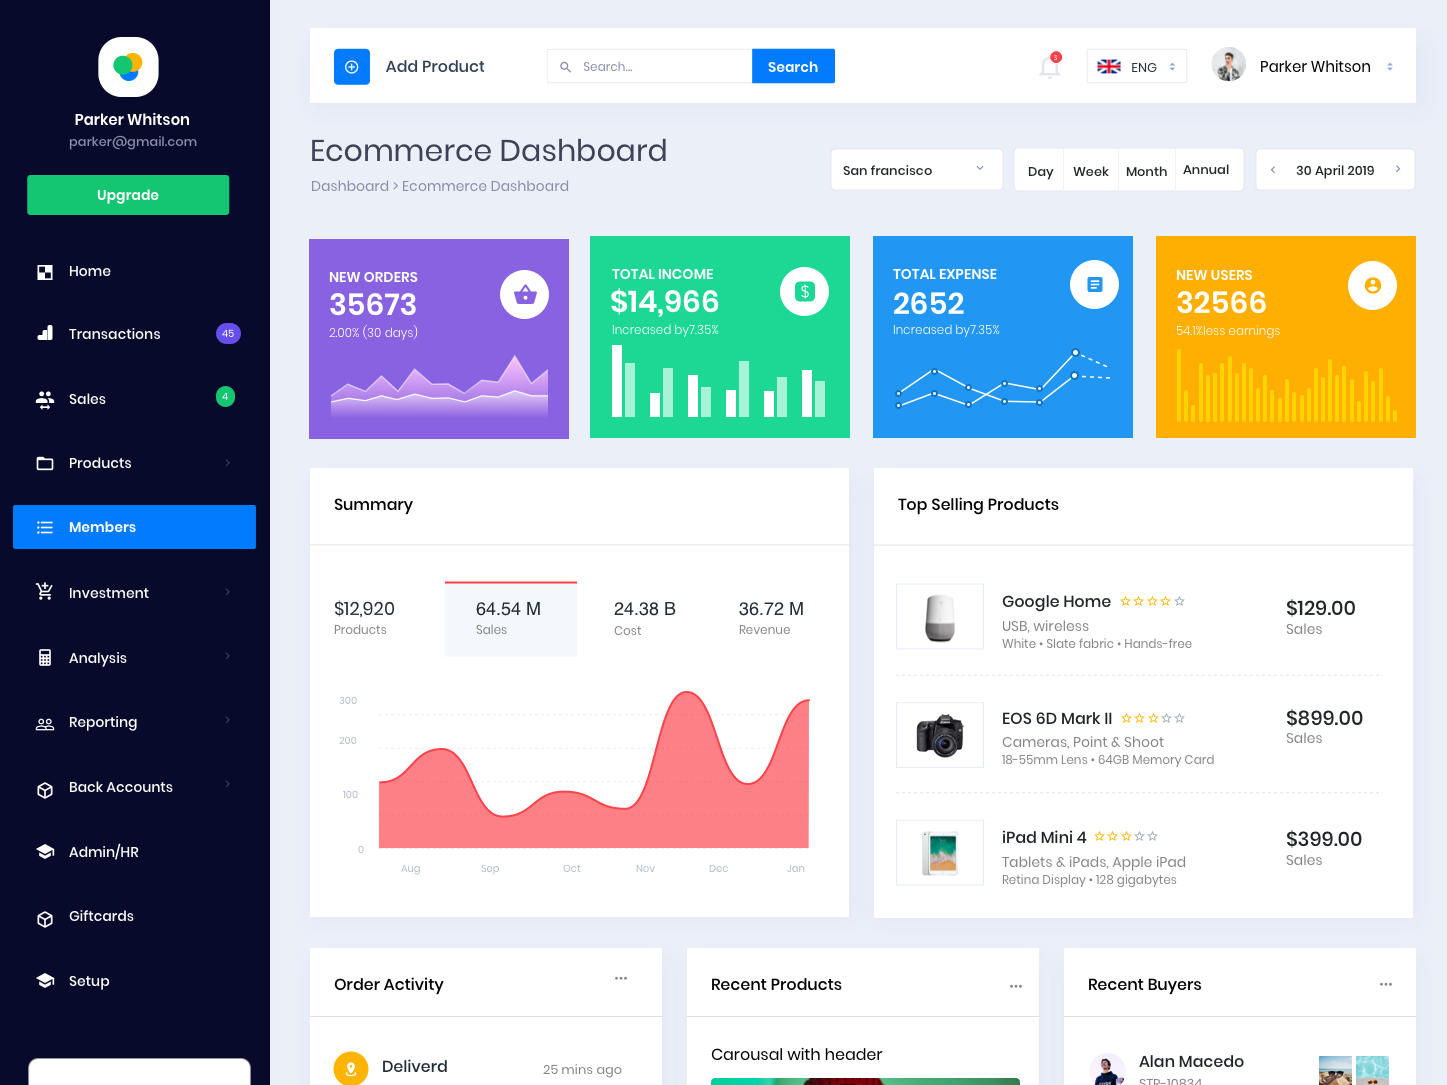 Star Ecommerce Dashboard By Rafzin P On Dribbble for Bootstrap 4 Calendar Icon